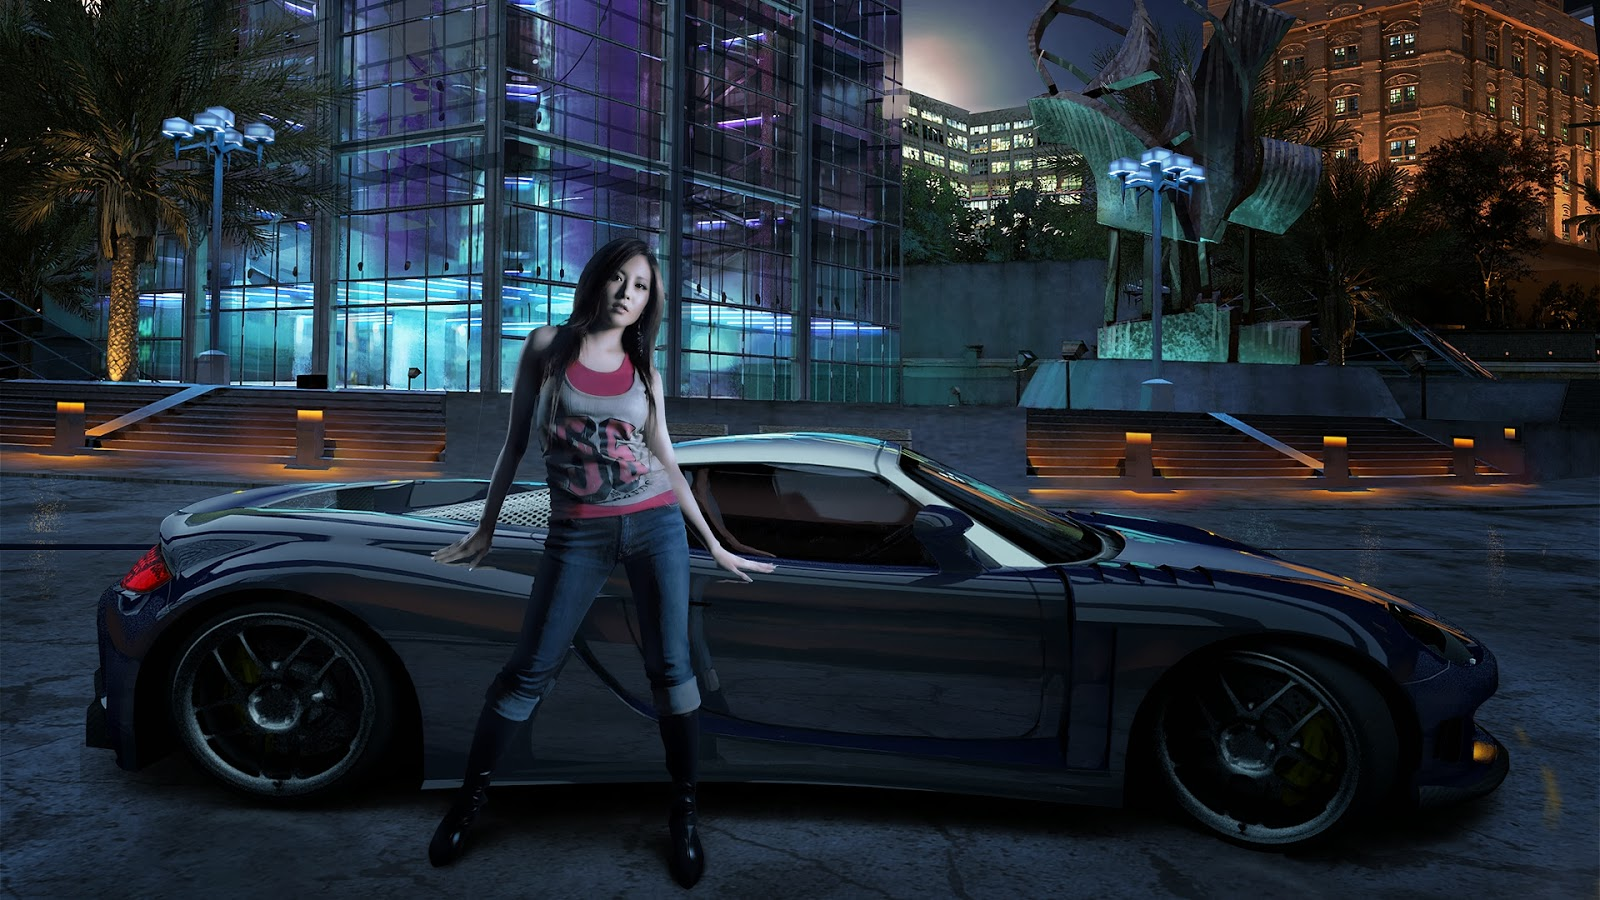 Girl-with-sports-car-night-background-HD-wallpaper-free-download.jpg